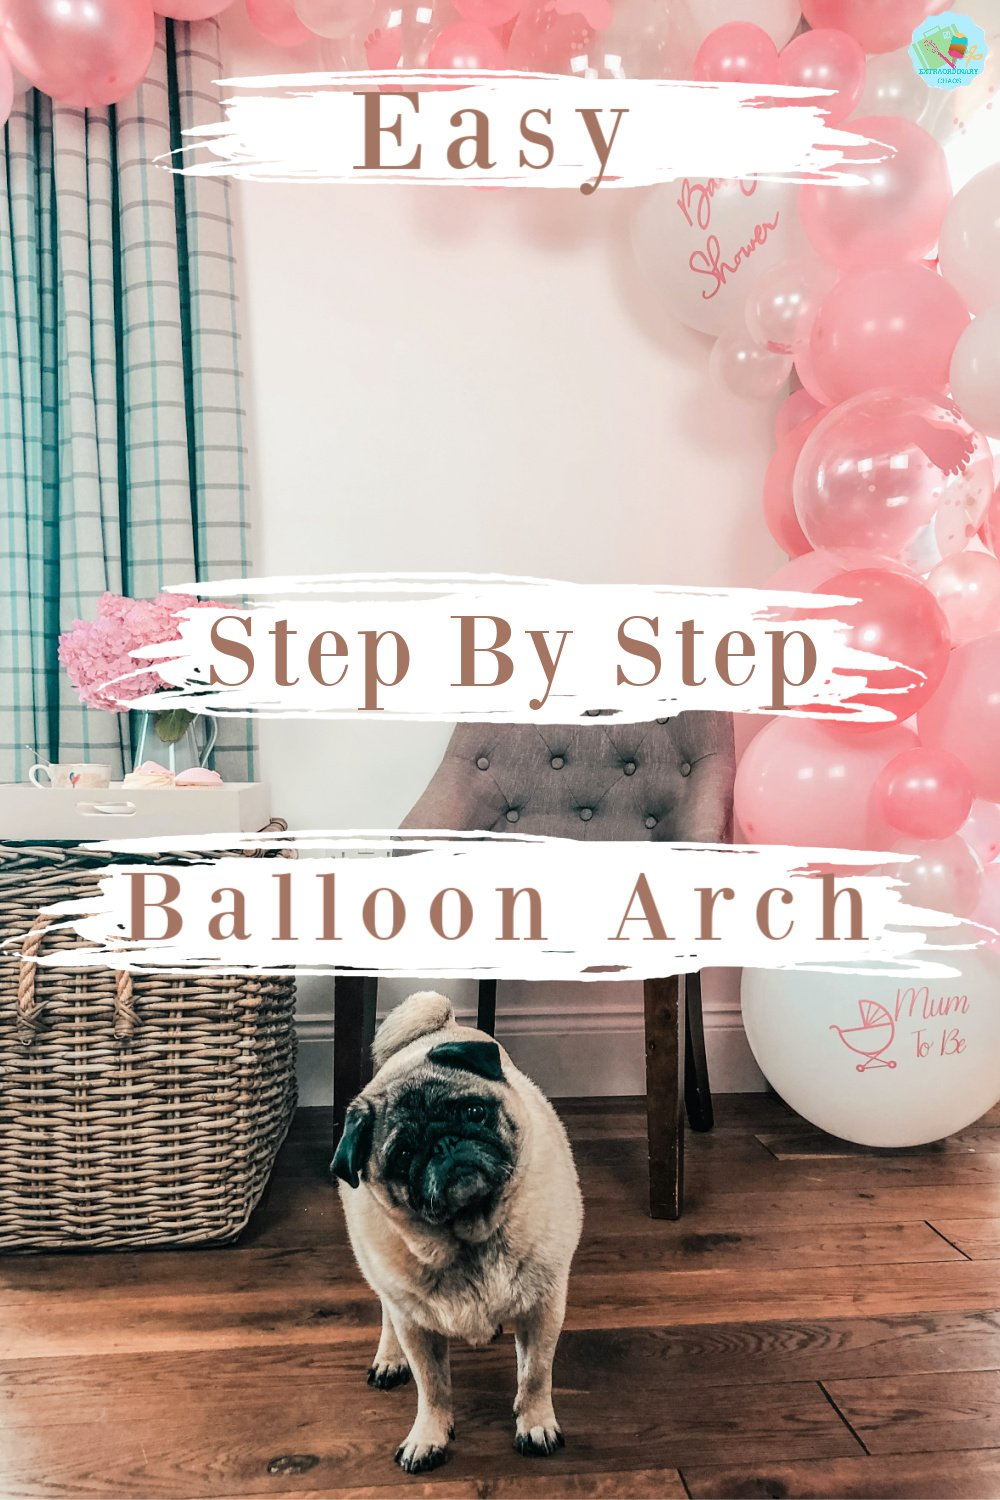 How to make an easy step by step balloon arch for parties, baby showers and bridal showers.